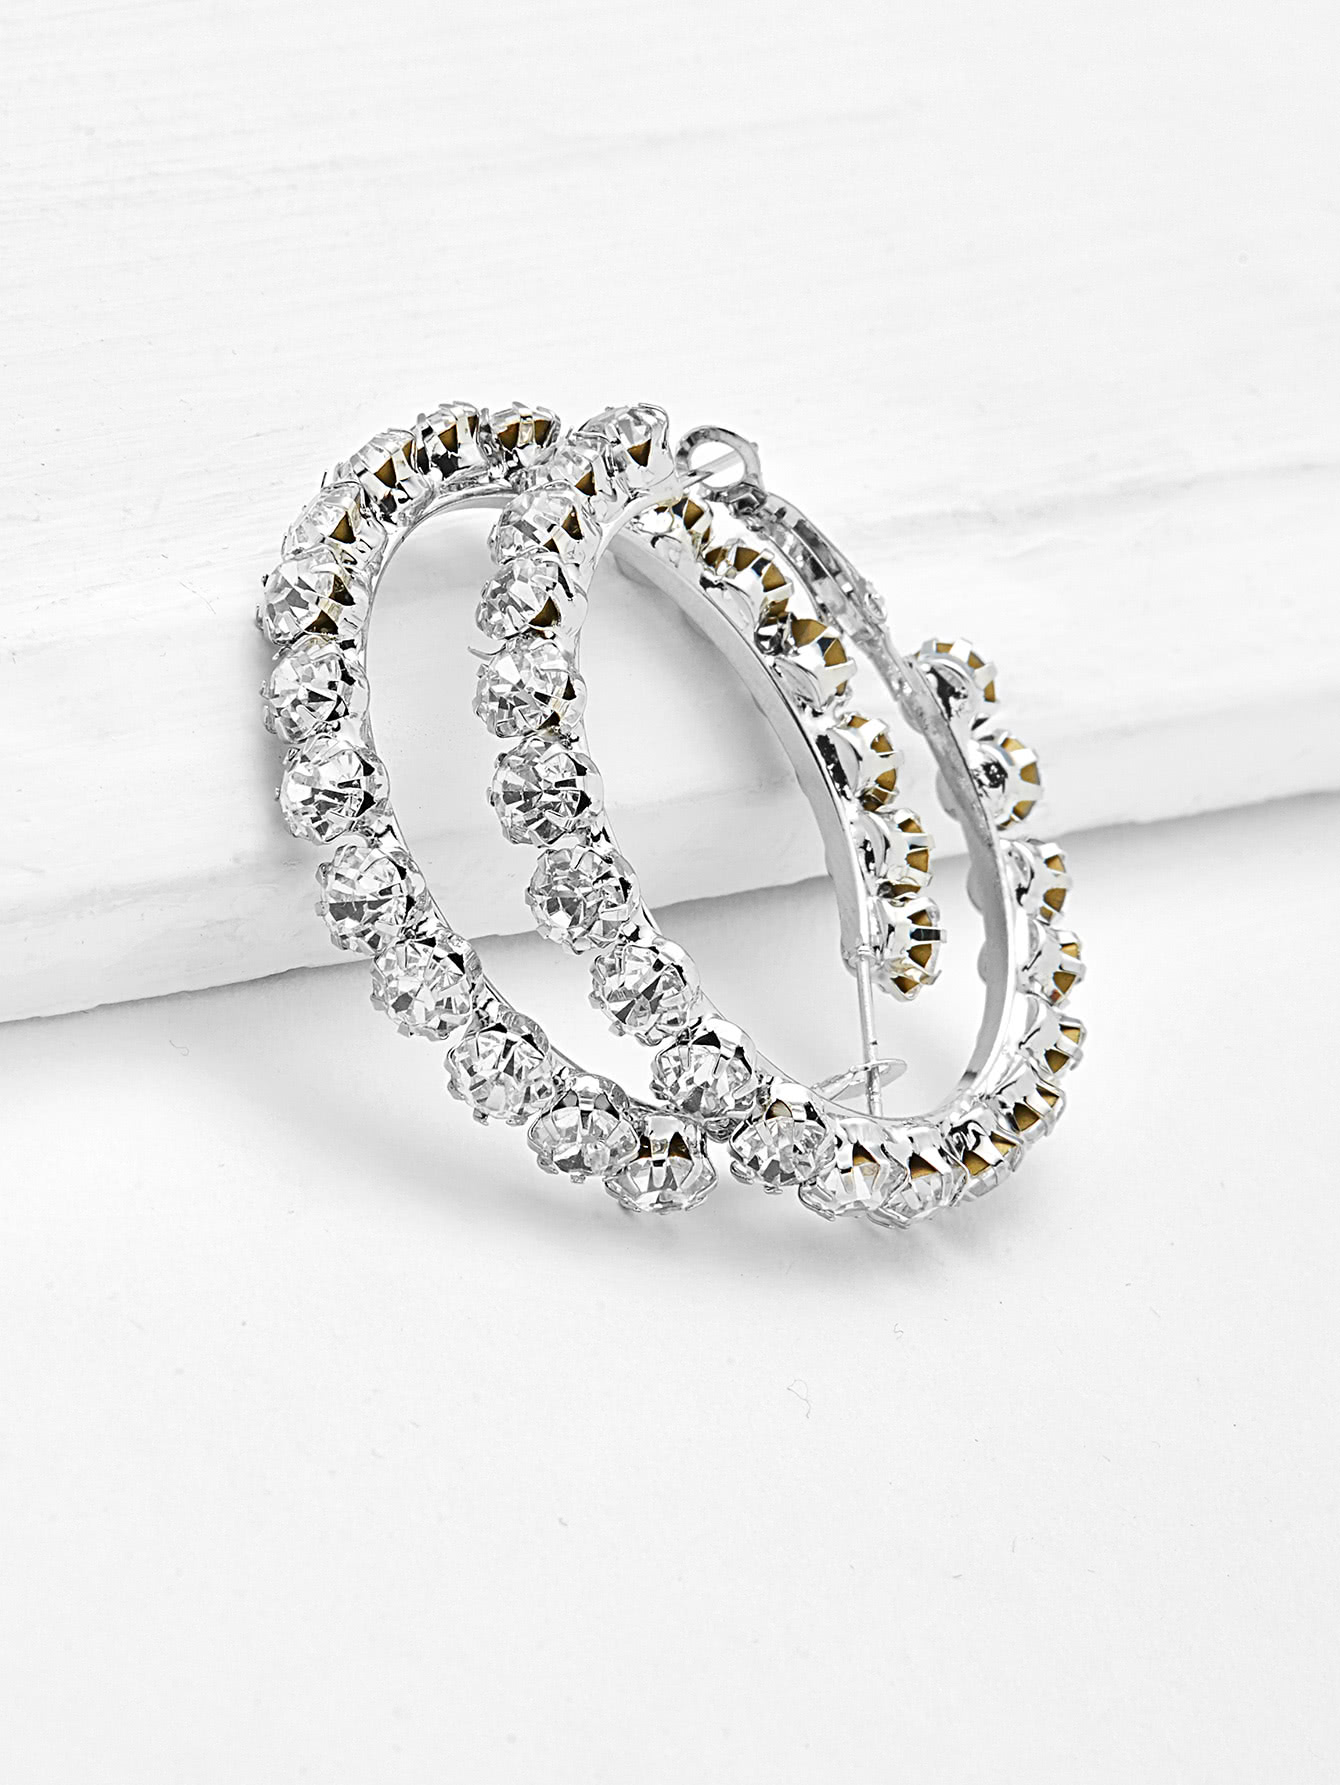 Rhinestone Delicate Hoop Earrings delicate rhinestone anchor earrings